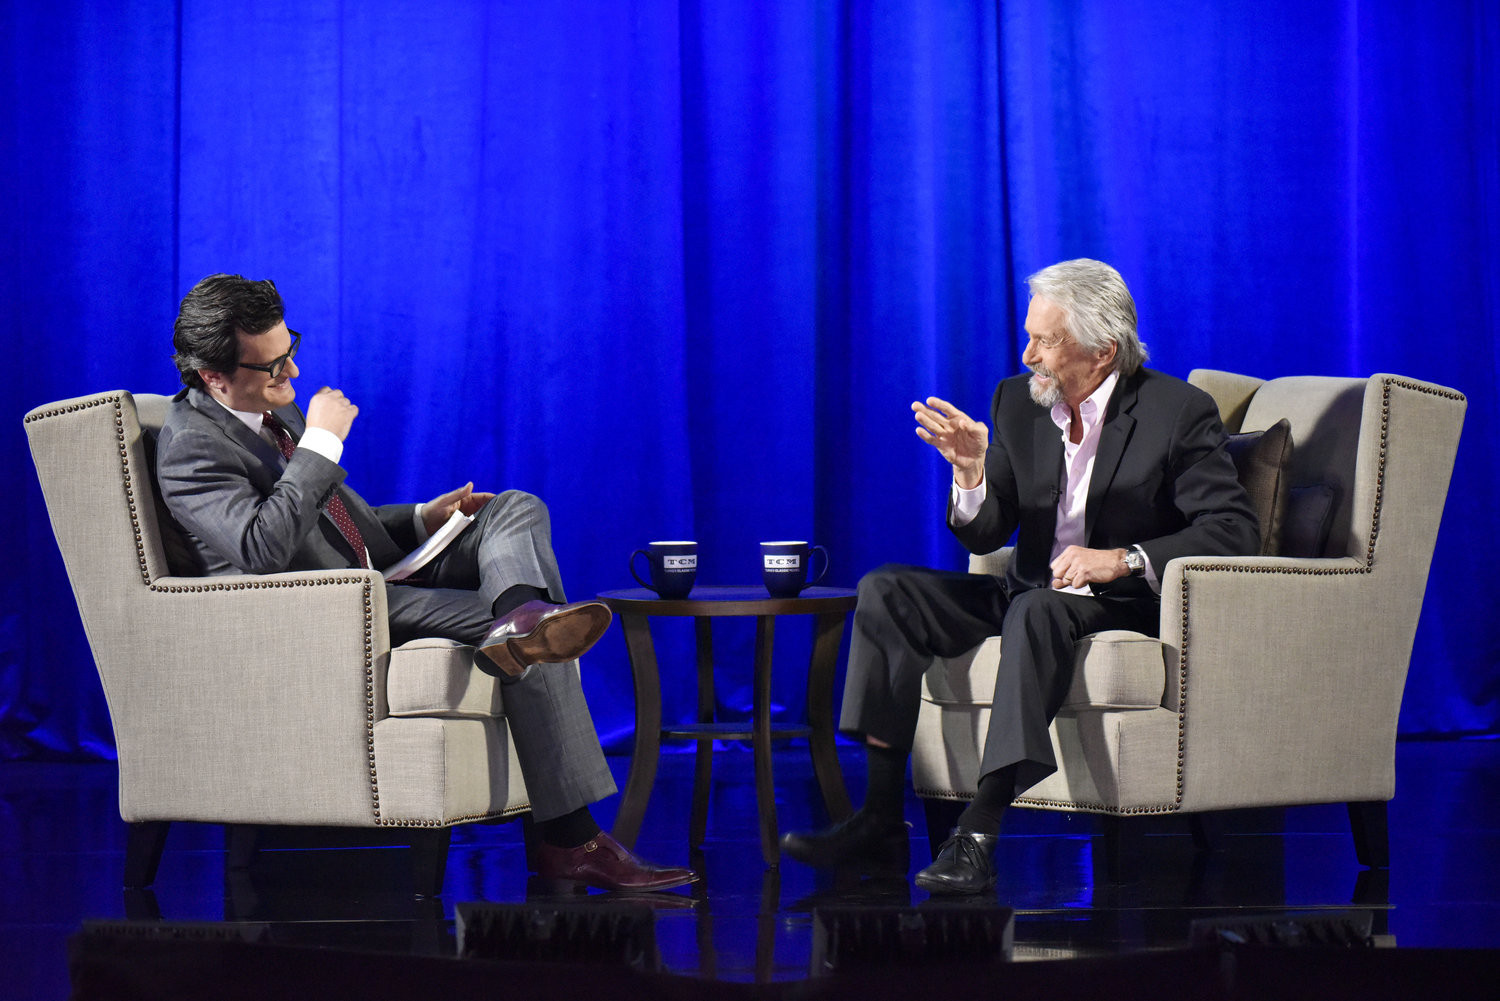 Michael Douglas Live From Interview 1.jpg